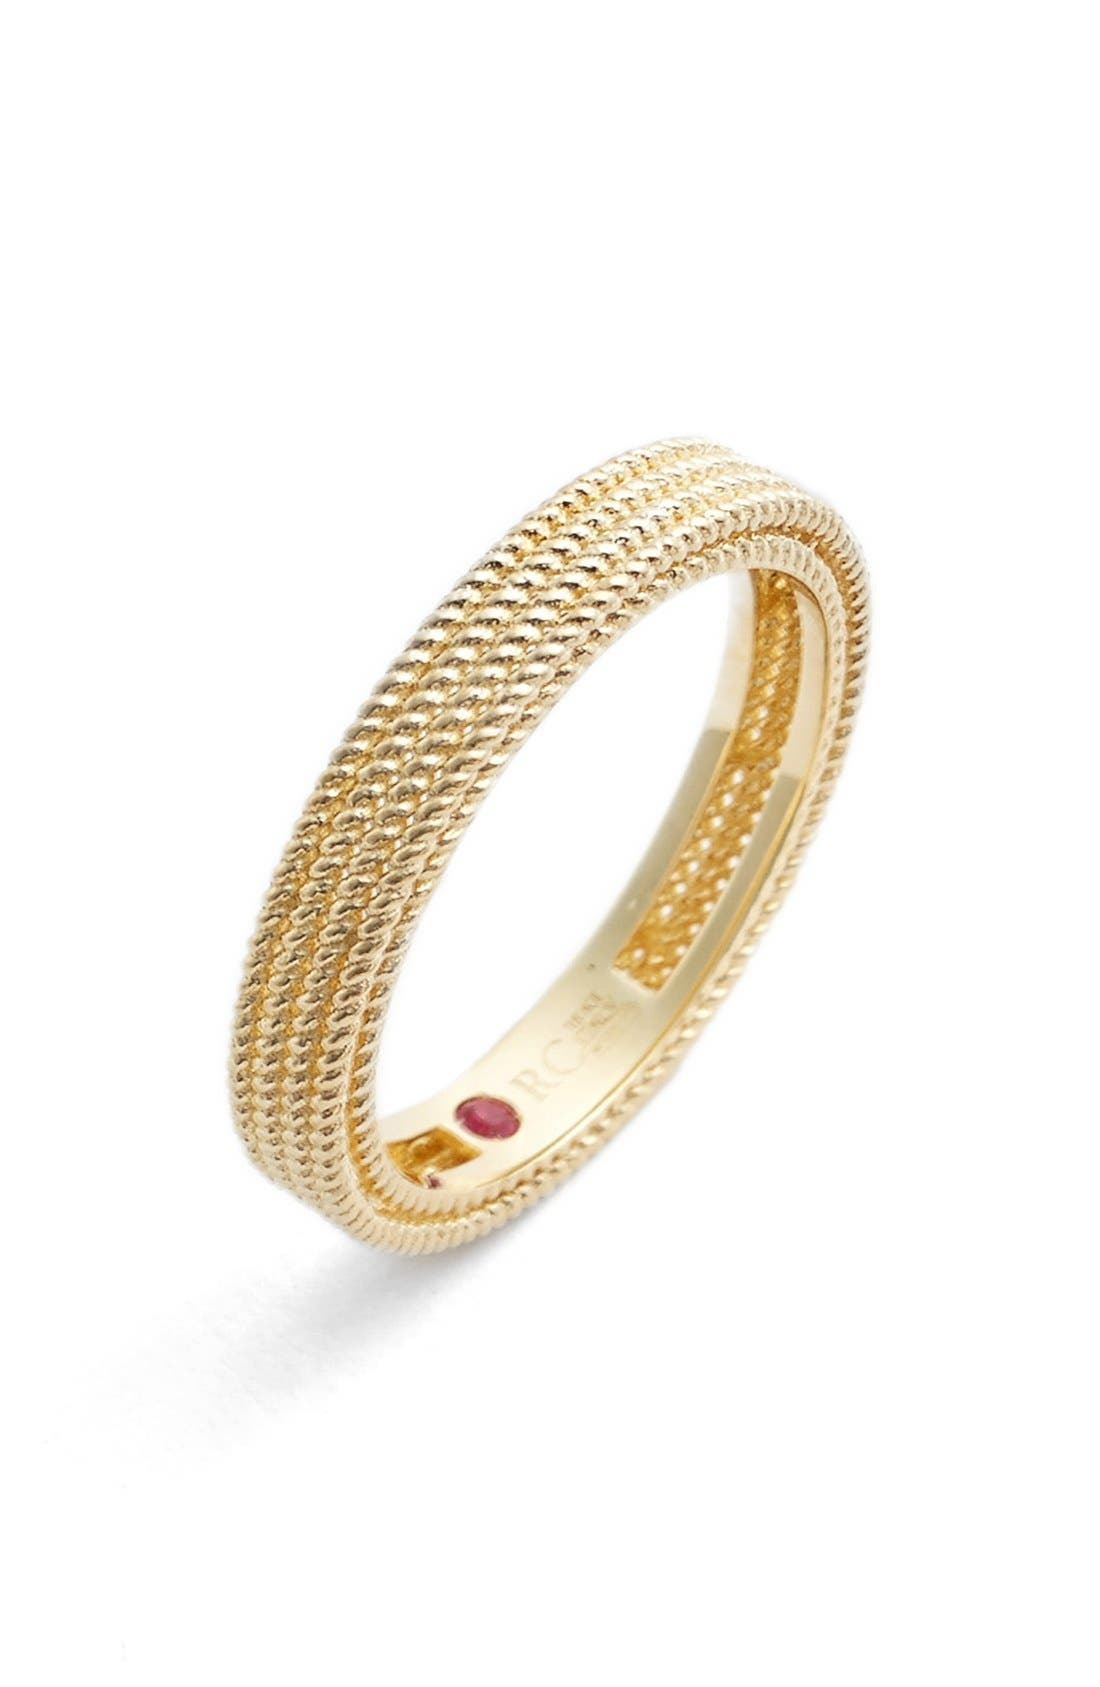 'Symphony - Barocco' Band Ring,                             Main thumbnail 1, color,                             Yellow Gold